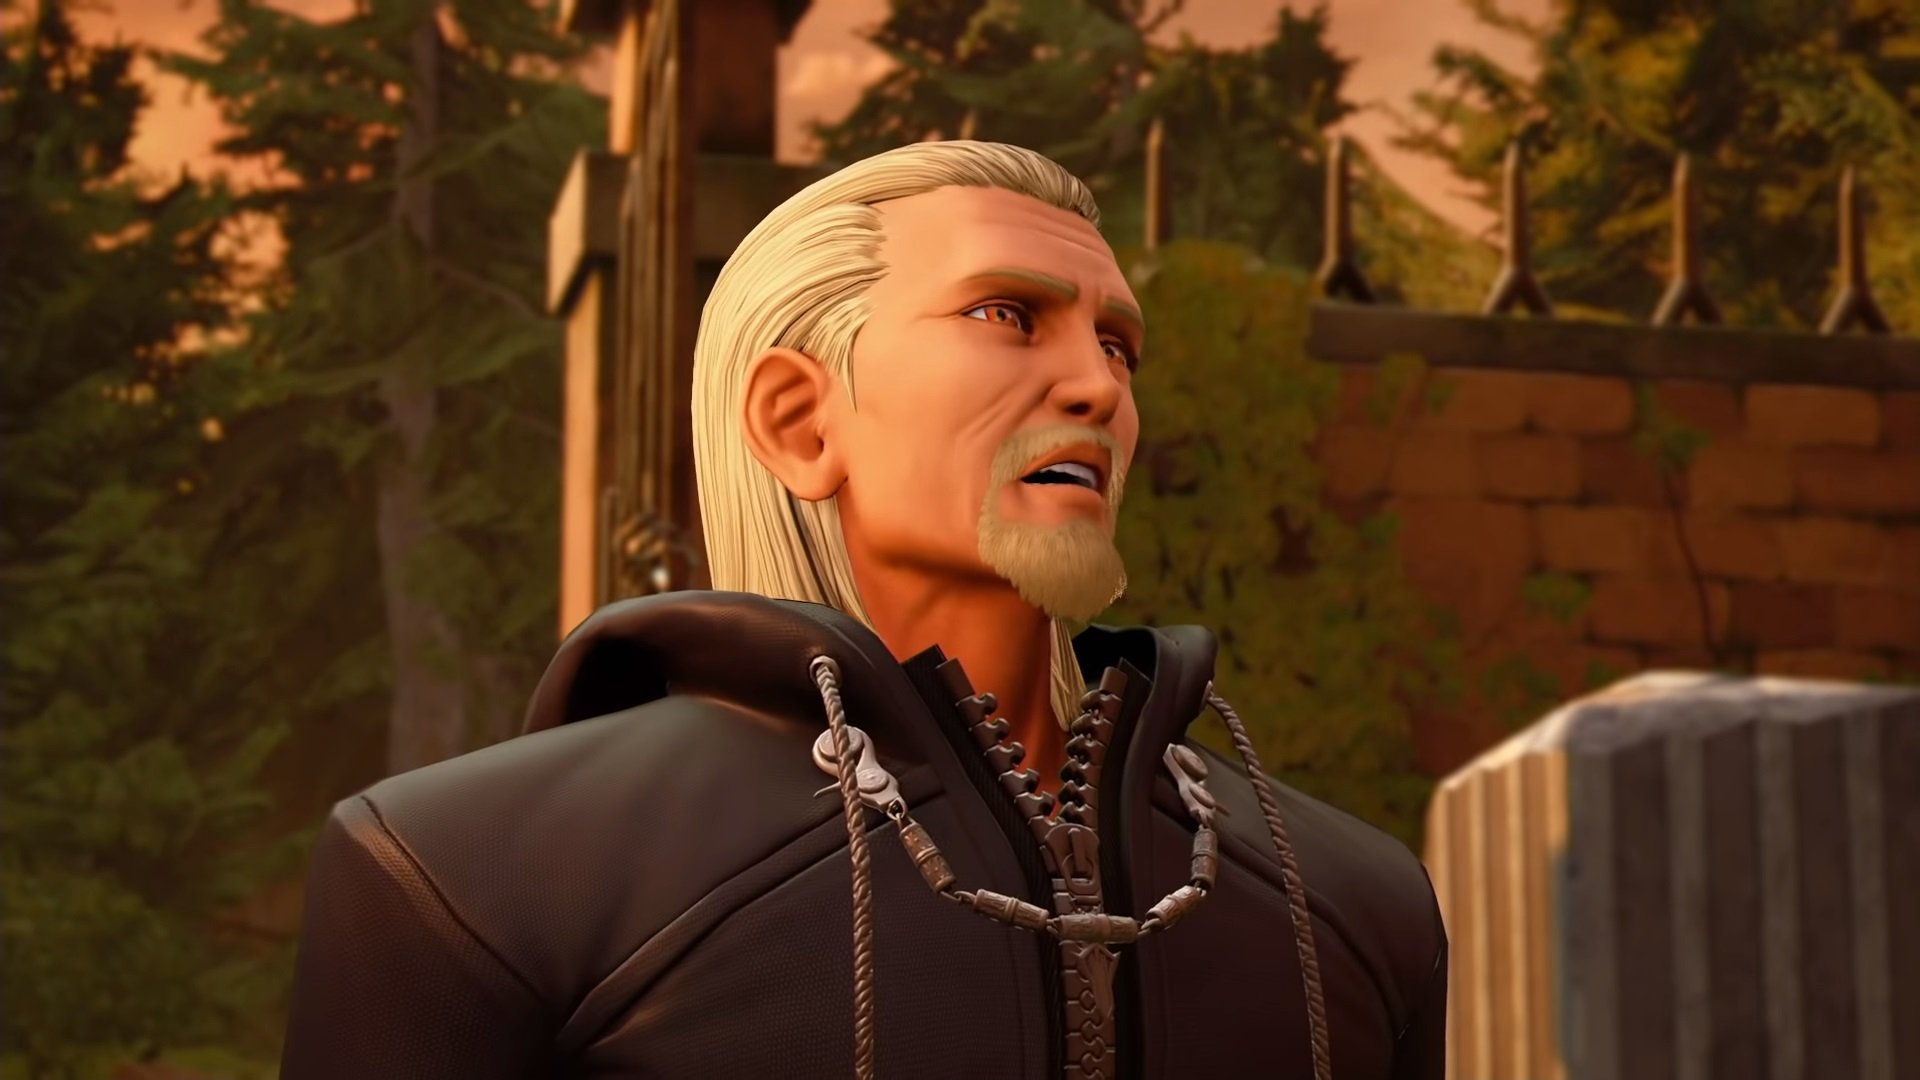 Kingdom Hearts for Dummies - Ansem the Wise